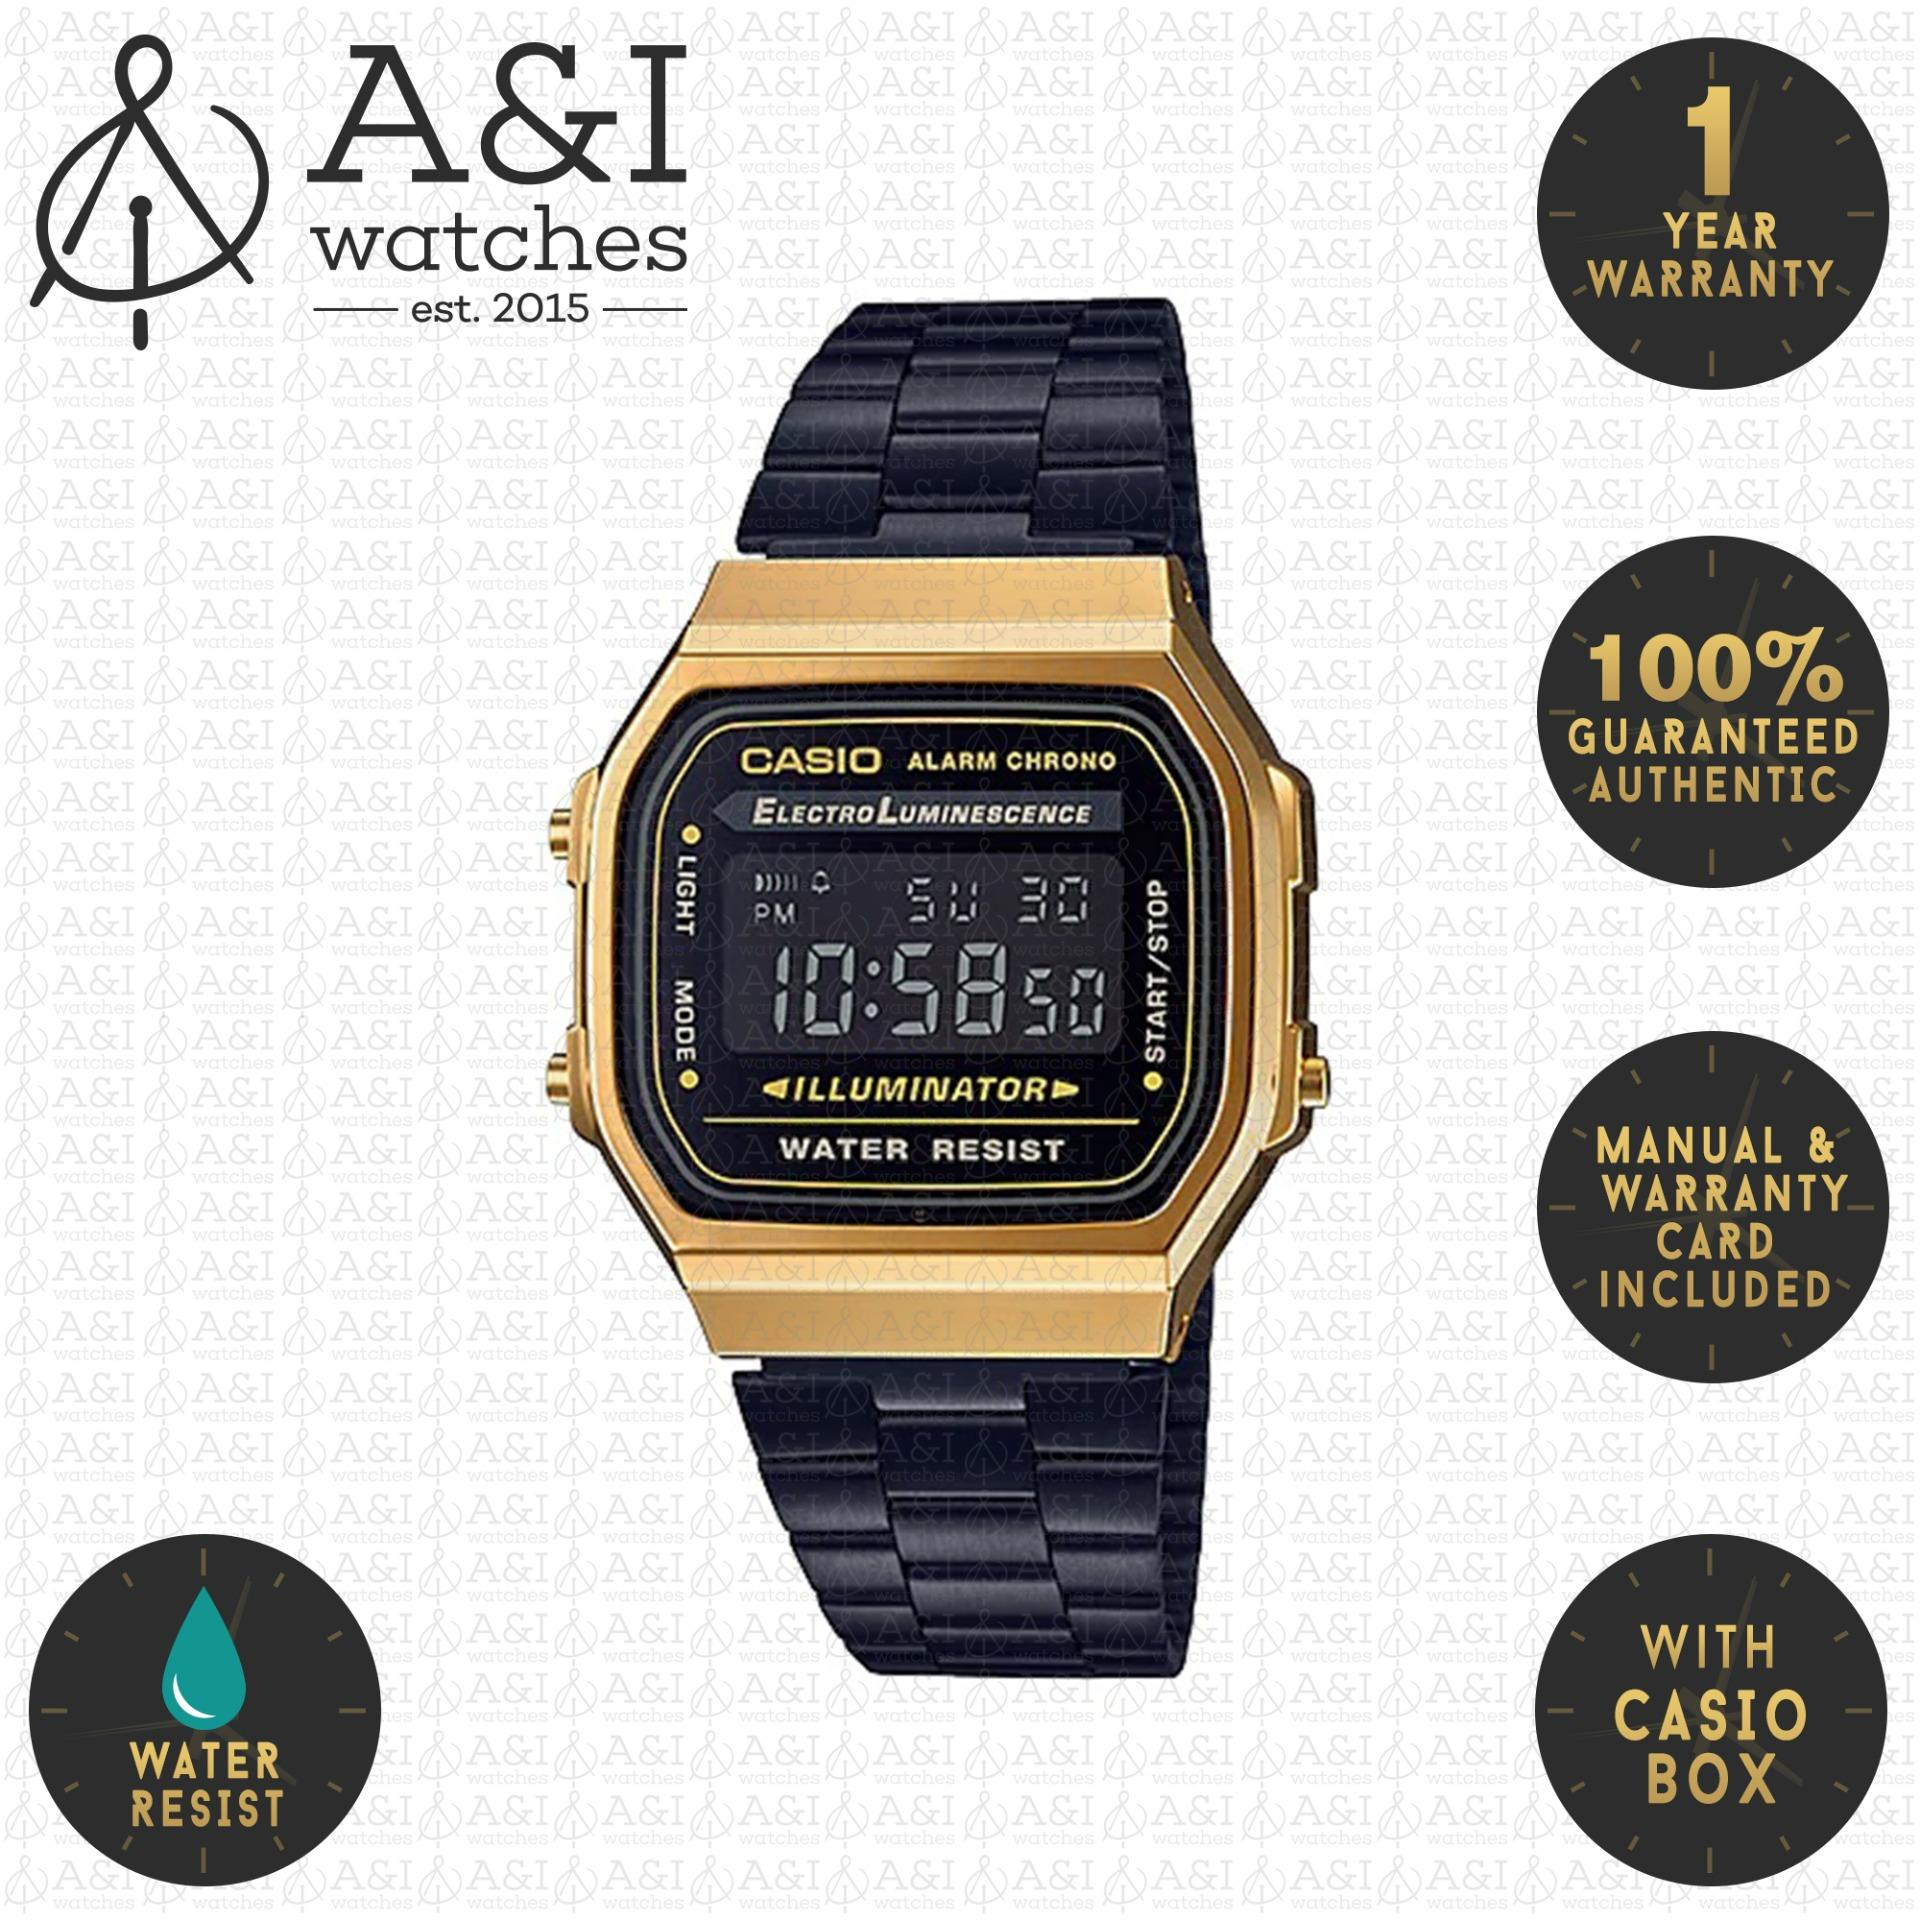 8cb0a3806 Casio Philippines: Casio price list - Casio Watches for Men & Women ...